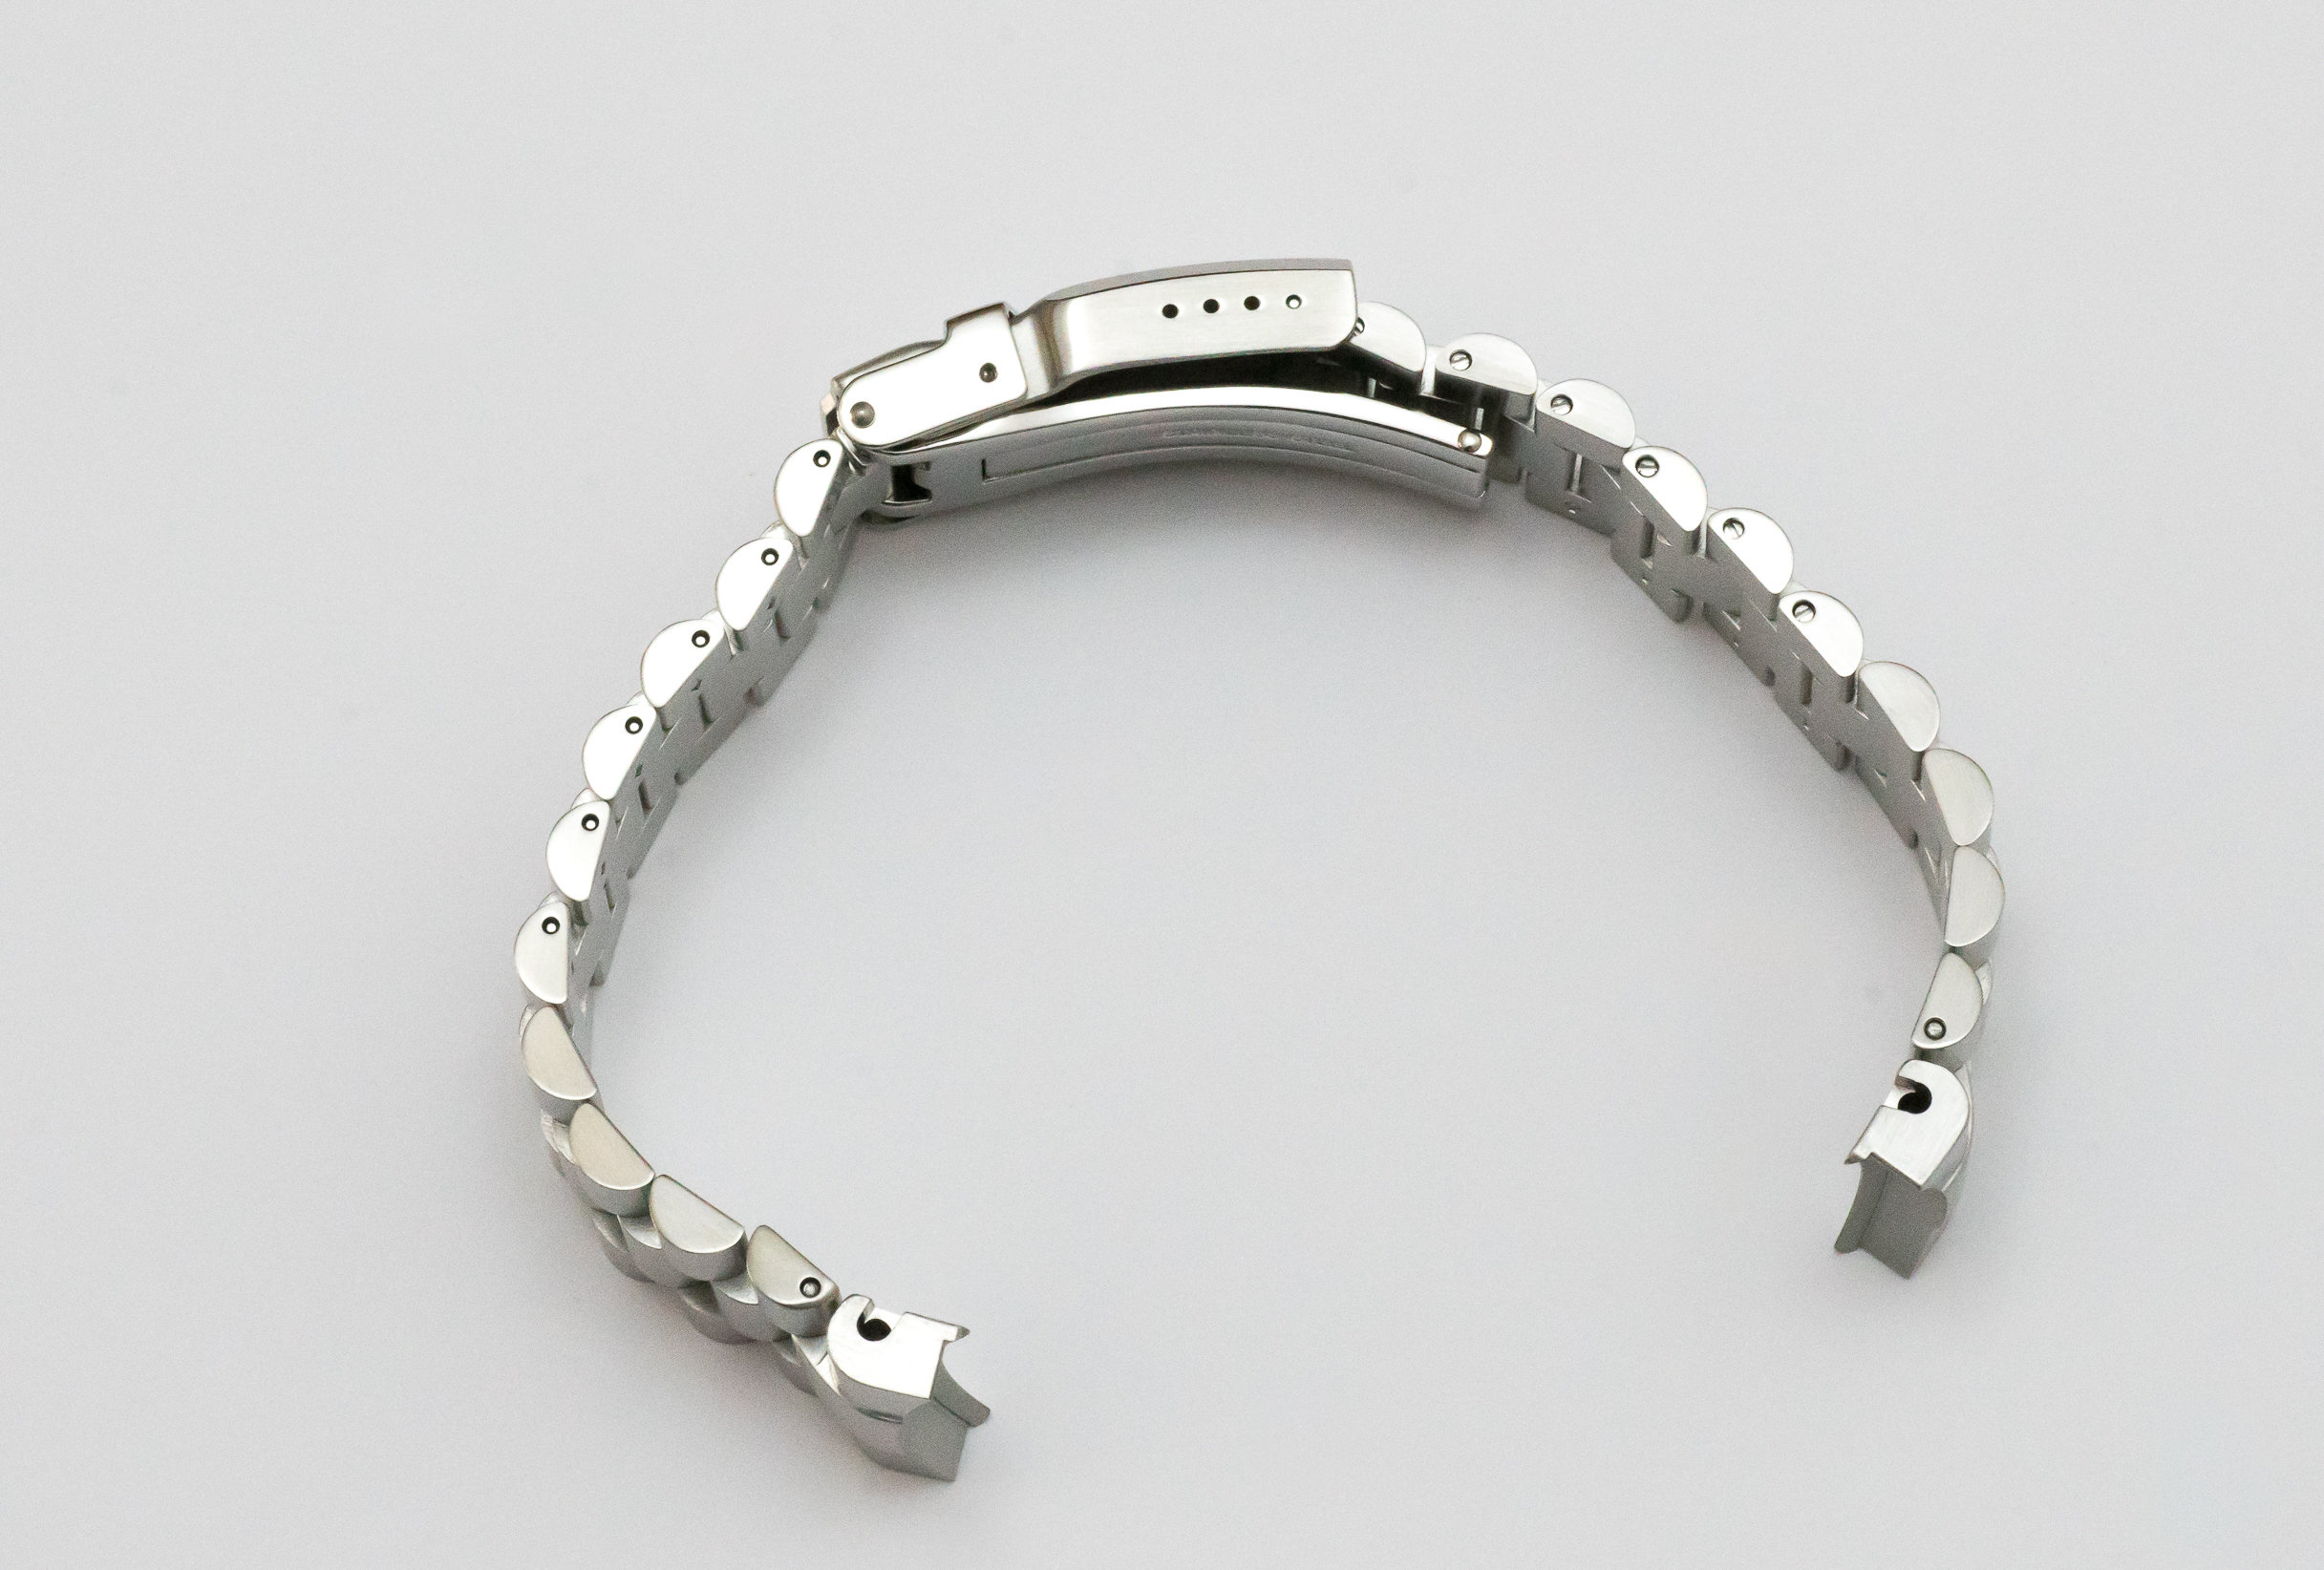 Borealis Estoril 300 Bracelet - Fits all versions